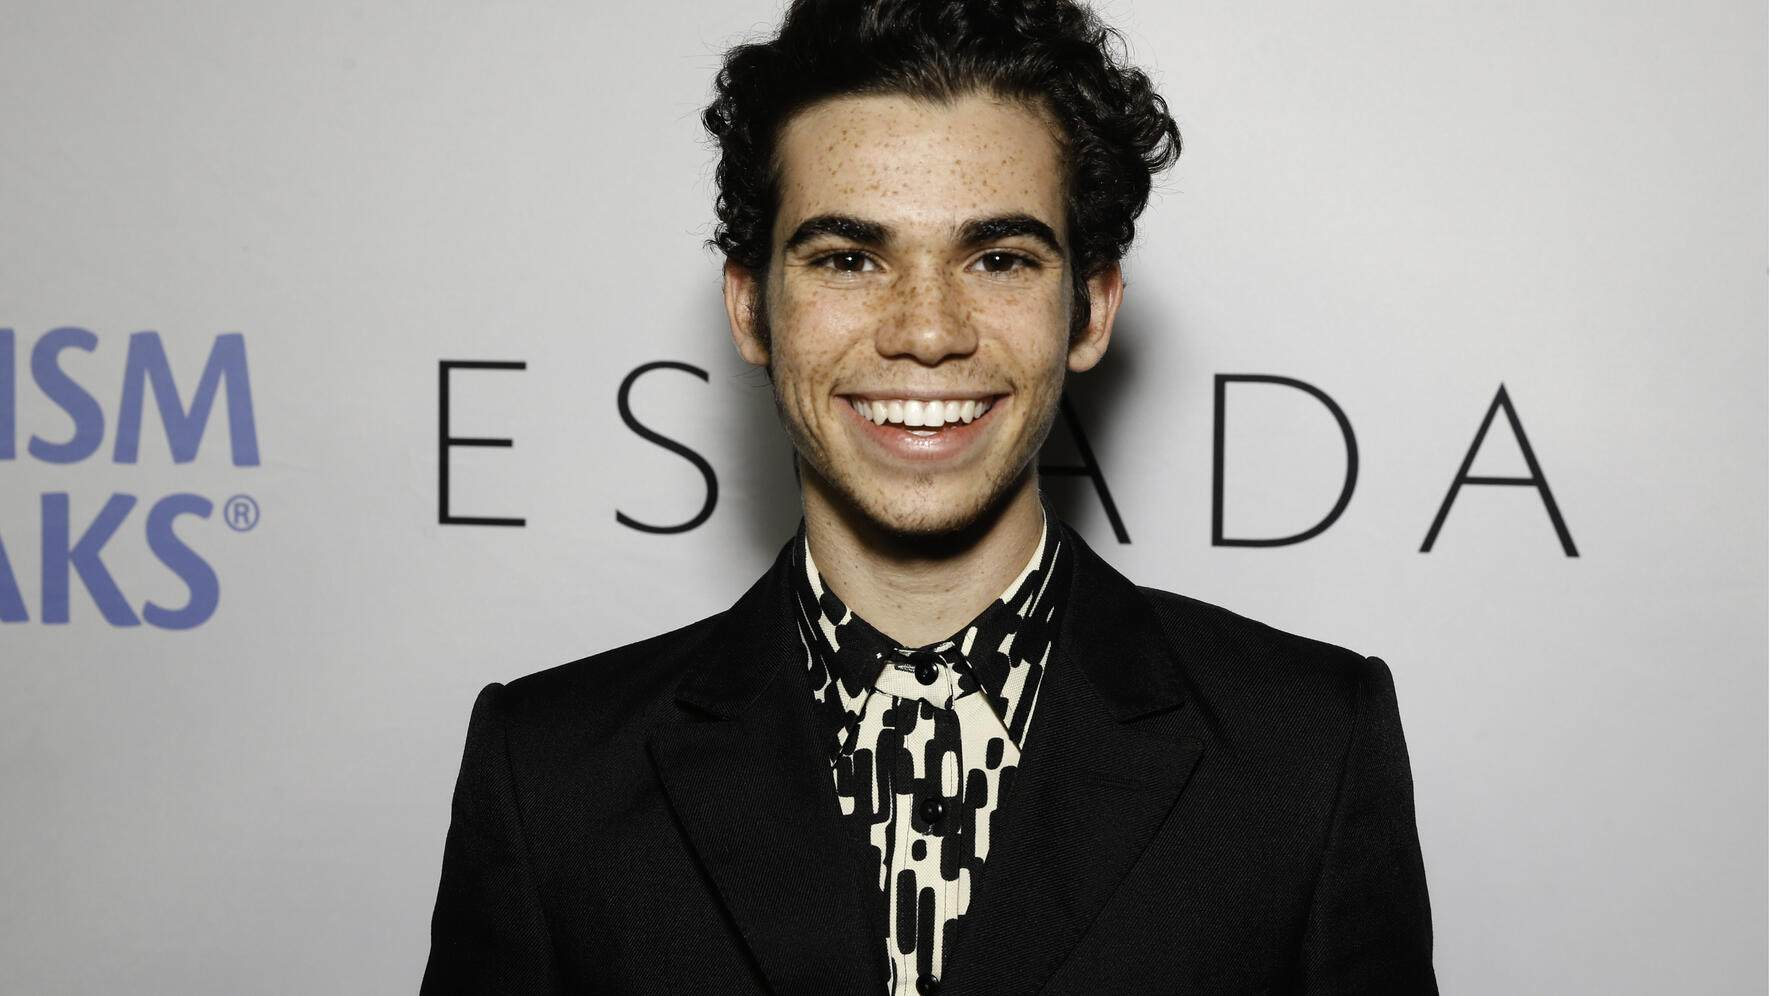 FILE - JULY 07, 2019: Actor Cameron Boyce has died at the age of 20 after suffering from an ongoing medical condition. LOS ANGELES, CA - OCTOBER 21:  Cameron Boyce arrives at Autism Speaks Hosts 'Into The Blue' charity event at Union Station on October 21, 2017 in Los Angeles, California.  (Photo by Rochelle Brodin/Getty Images)